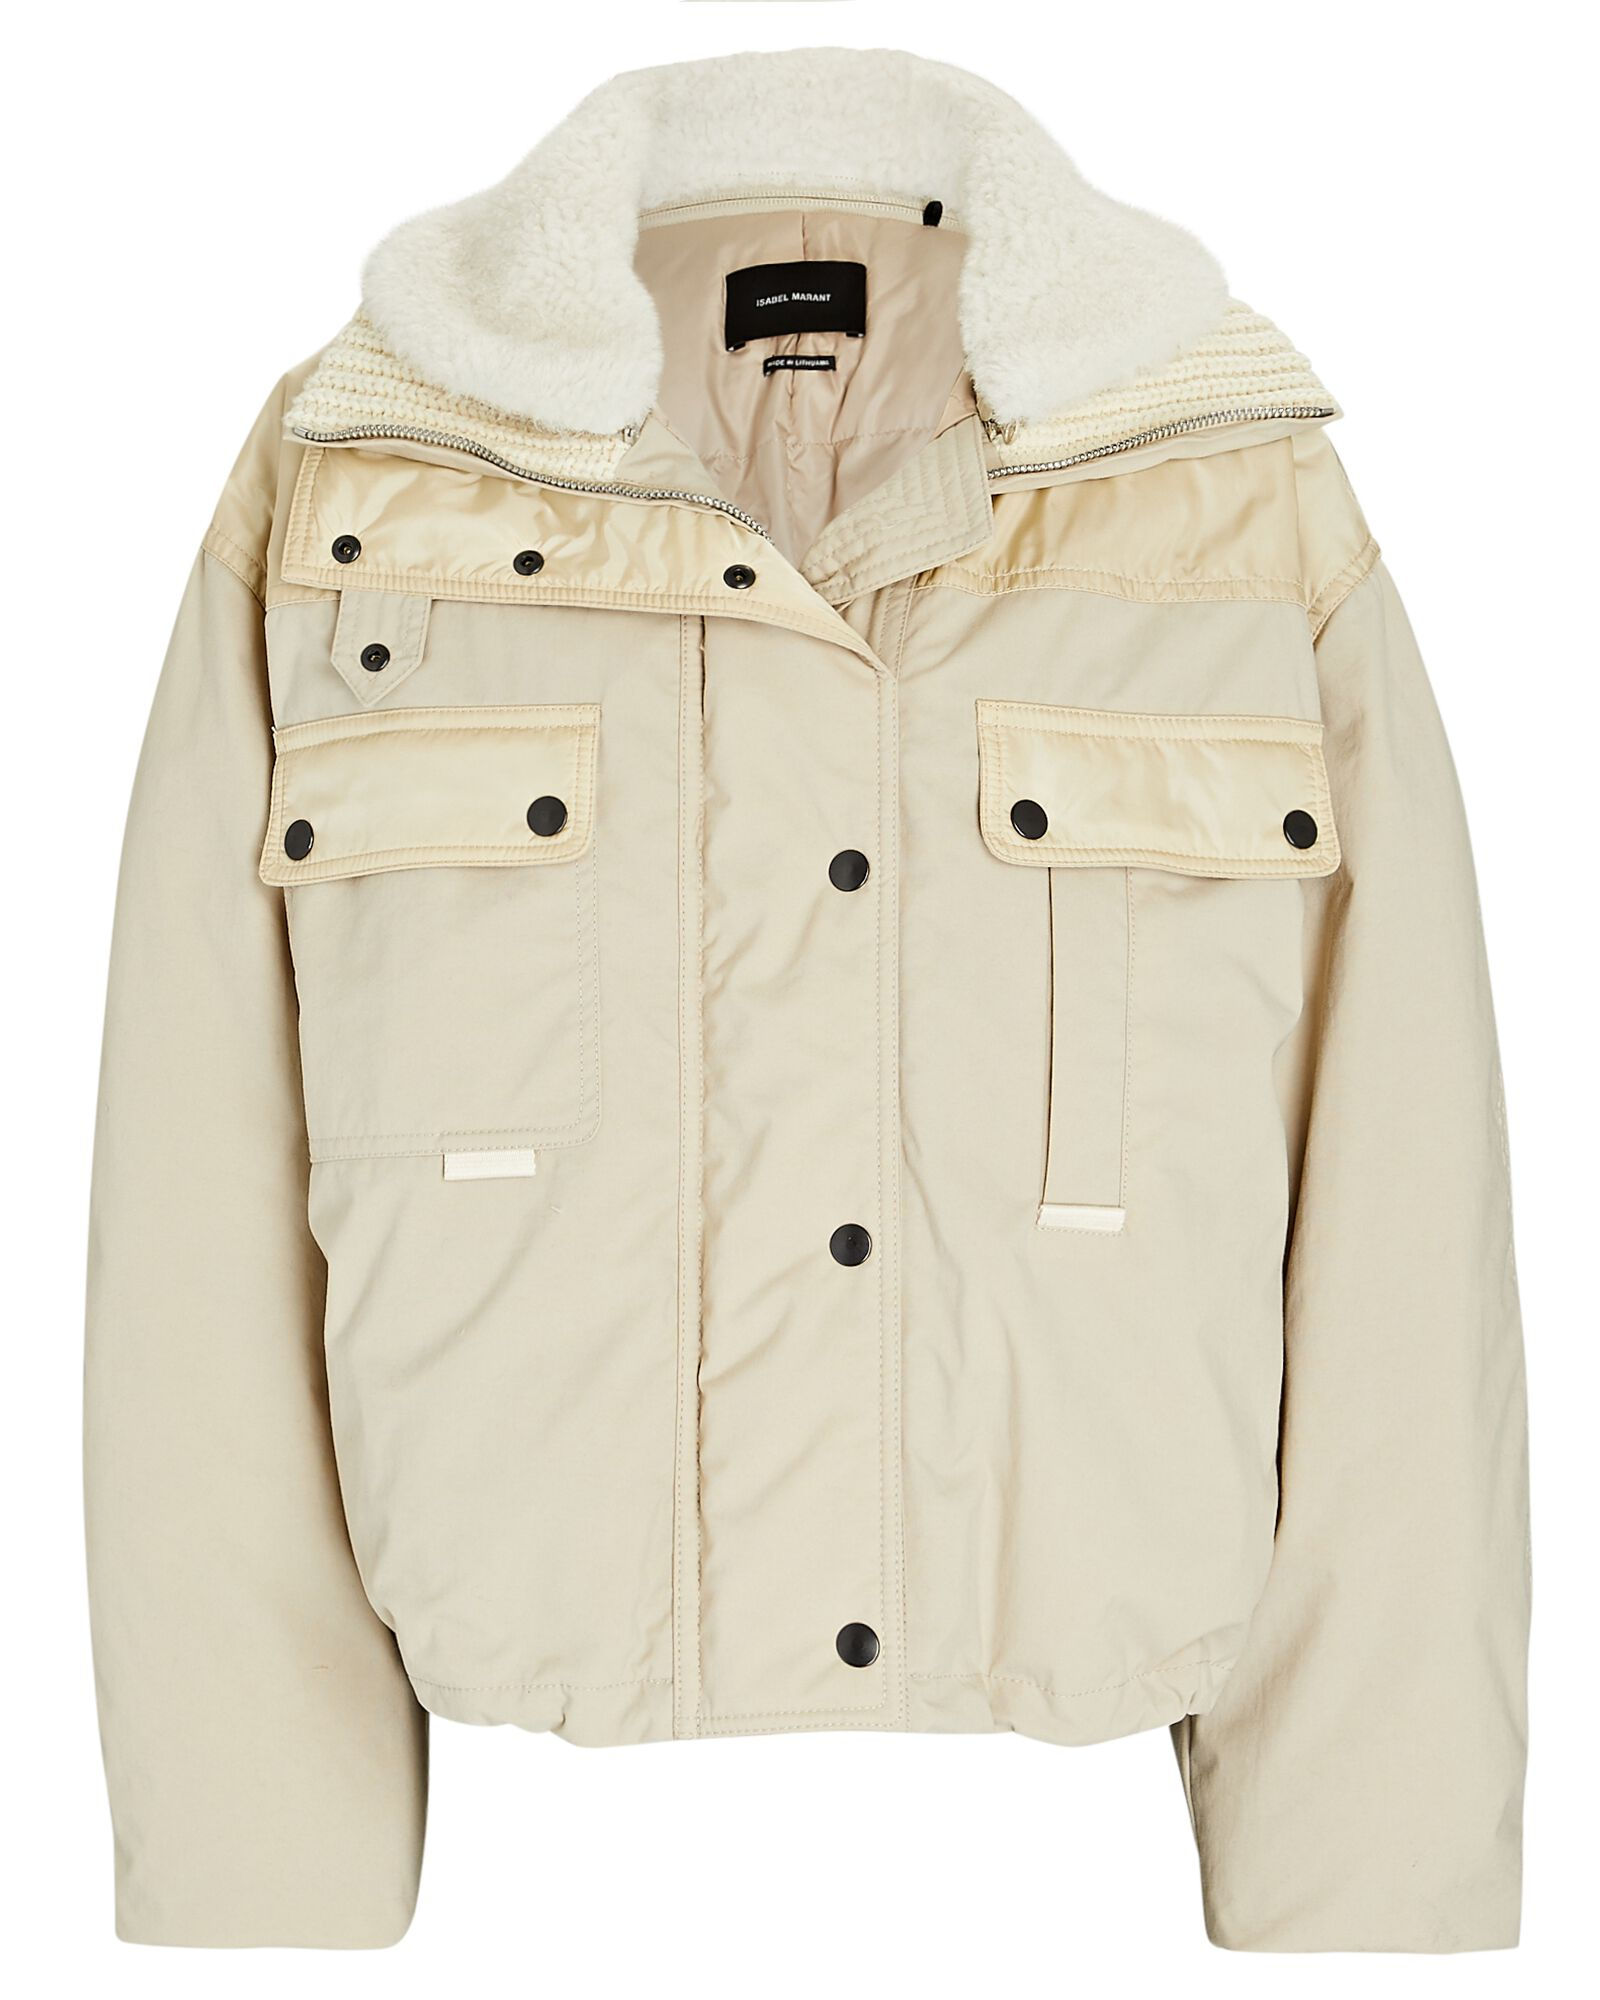 fall essential items - nude bomber jacket